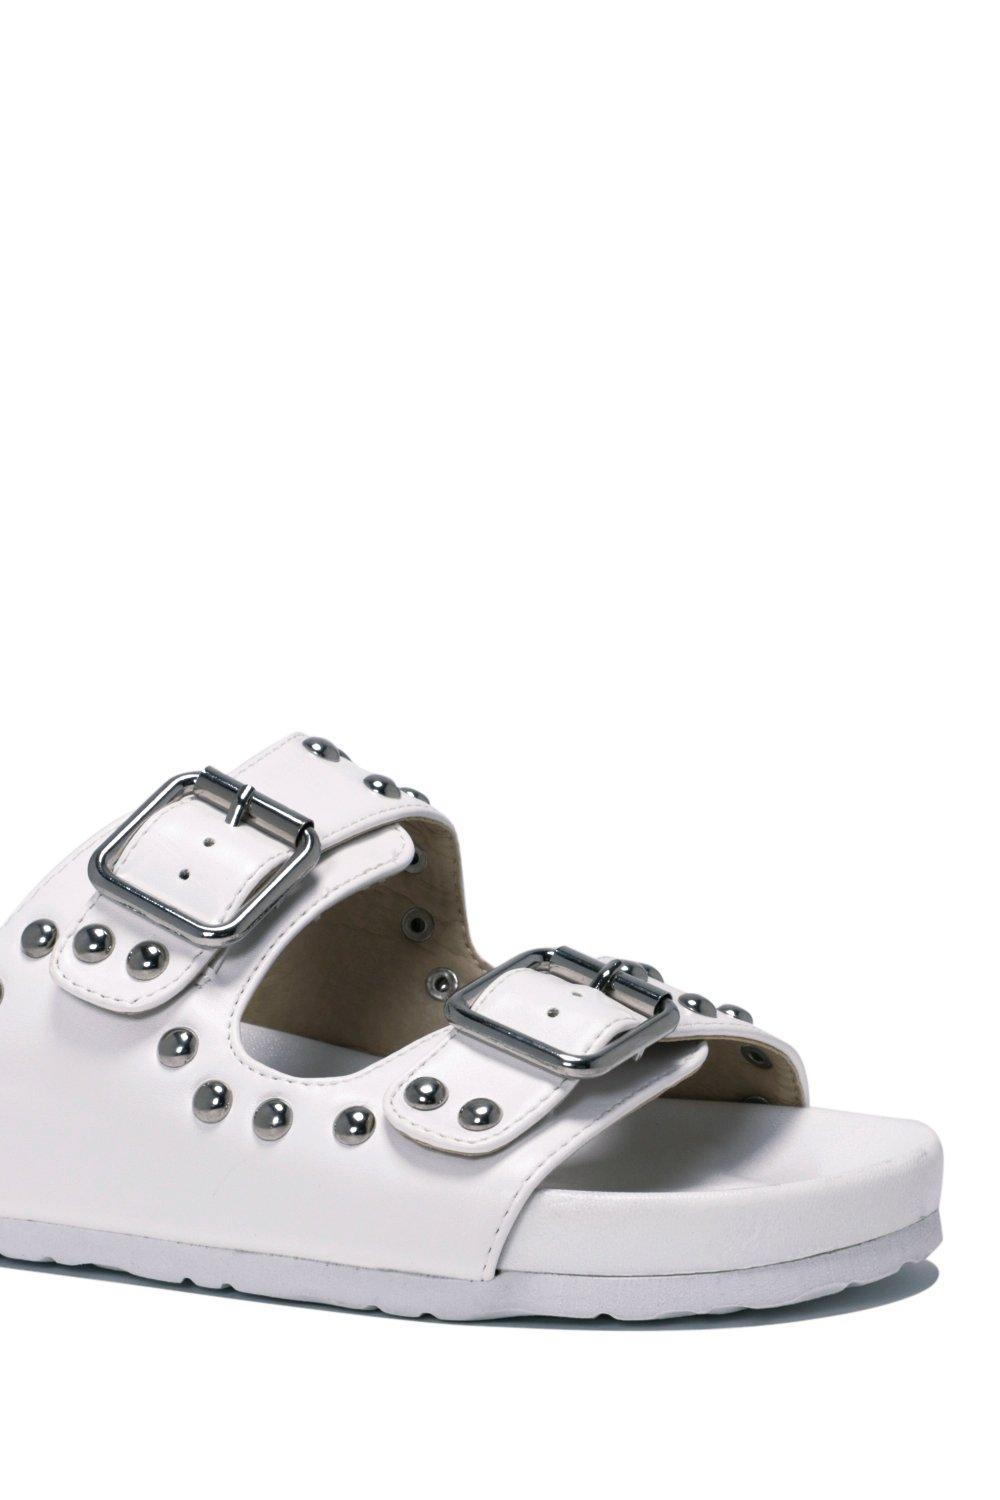 37c401256541 Womens White Buckle Up Faux Leather Slide Sandal.